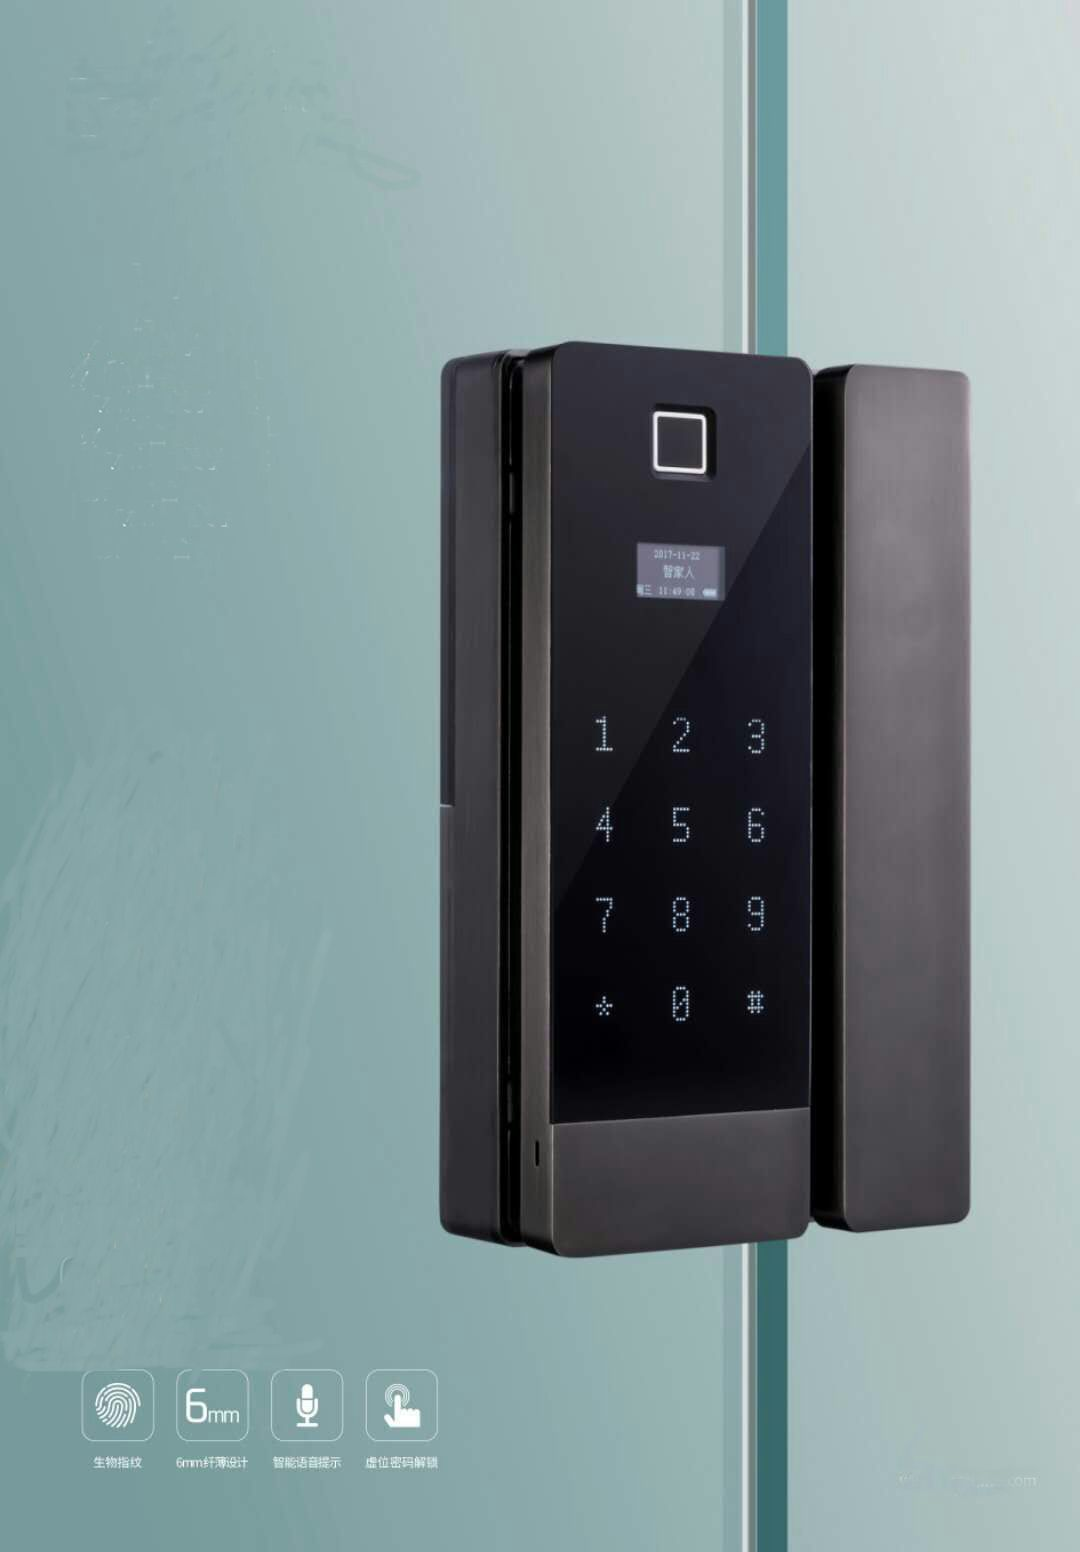 Bedroom Door Keypad Lock Digital Glass Door Lock For Keyless Access Lockly Mood